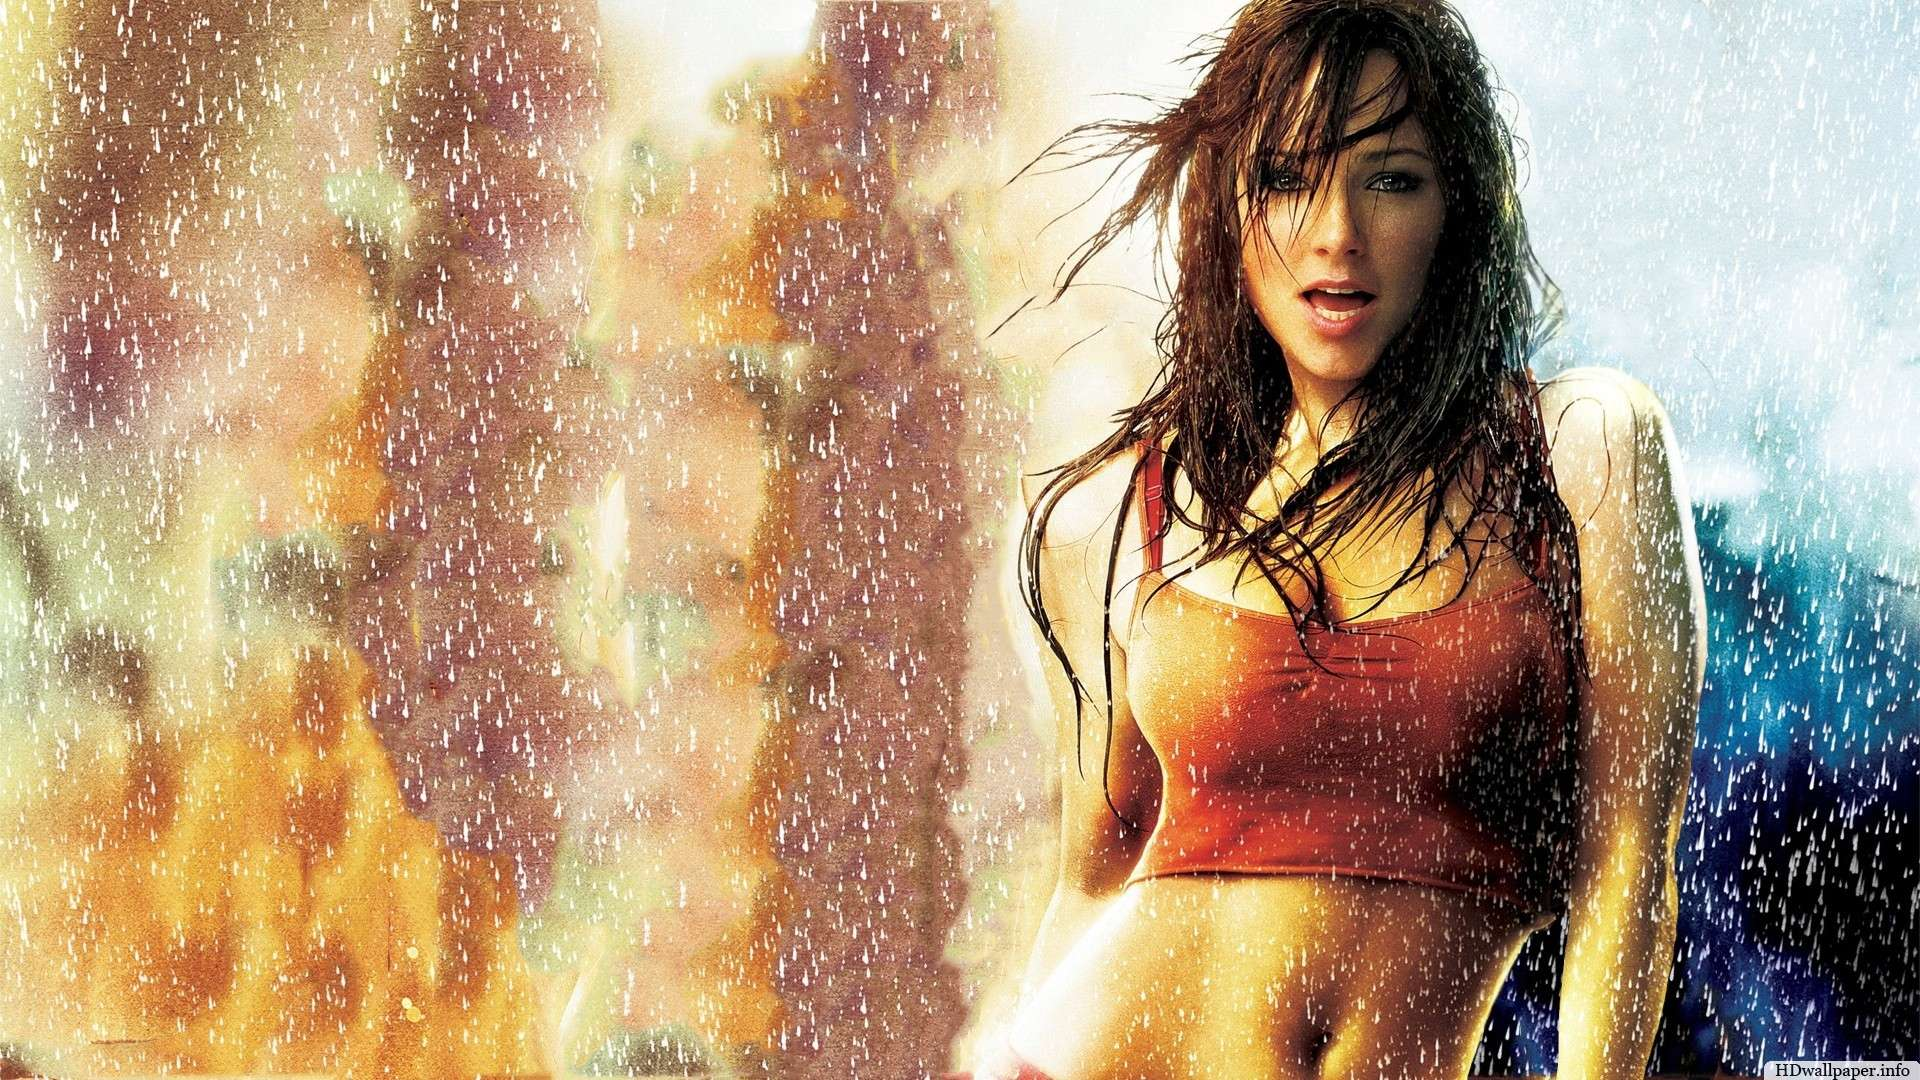 Step Up 2 Wallpaper Hd | HD Wallpapers